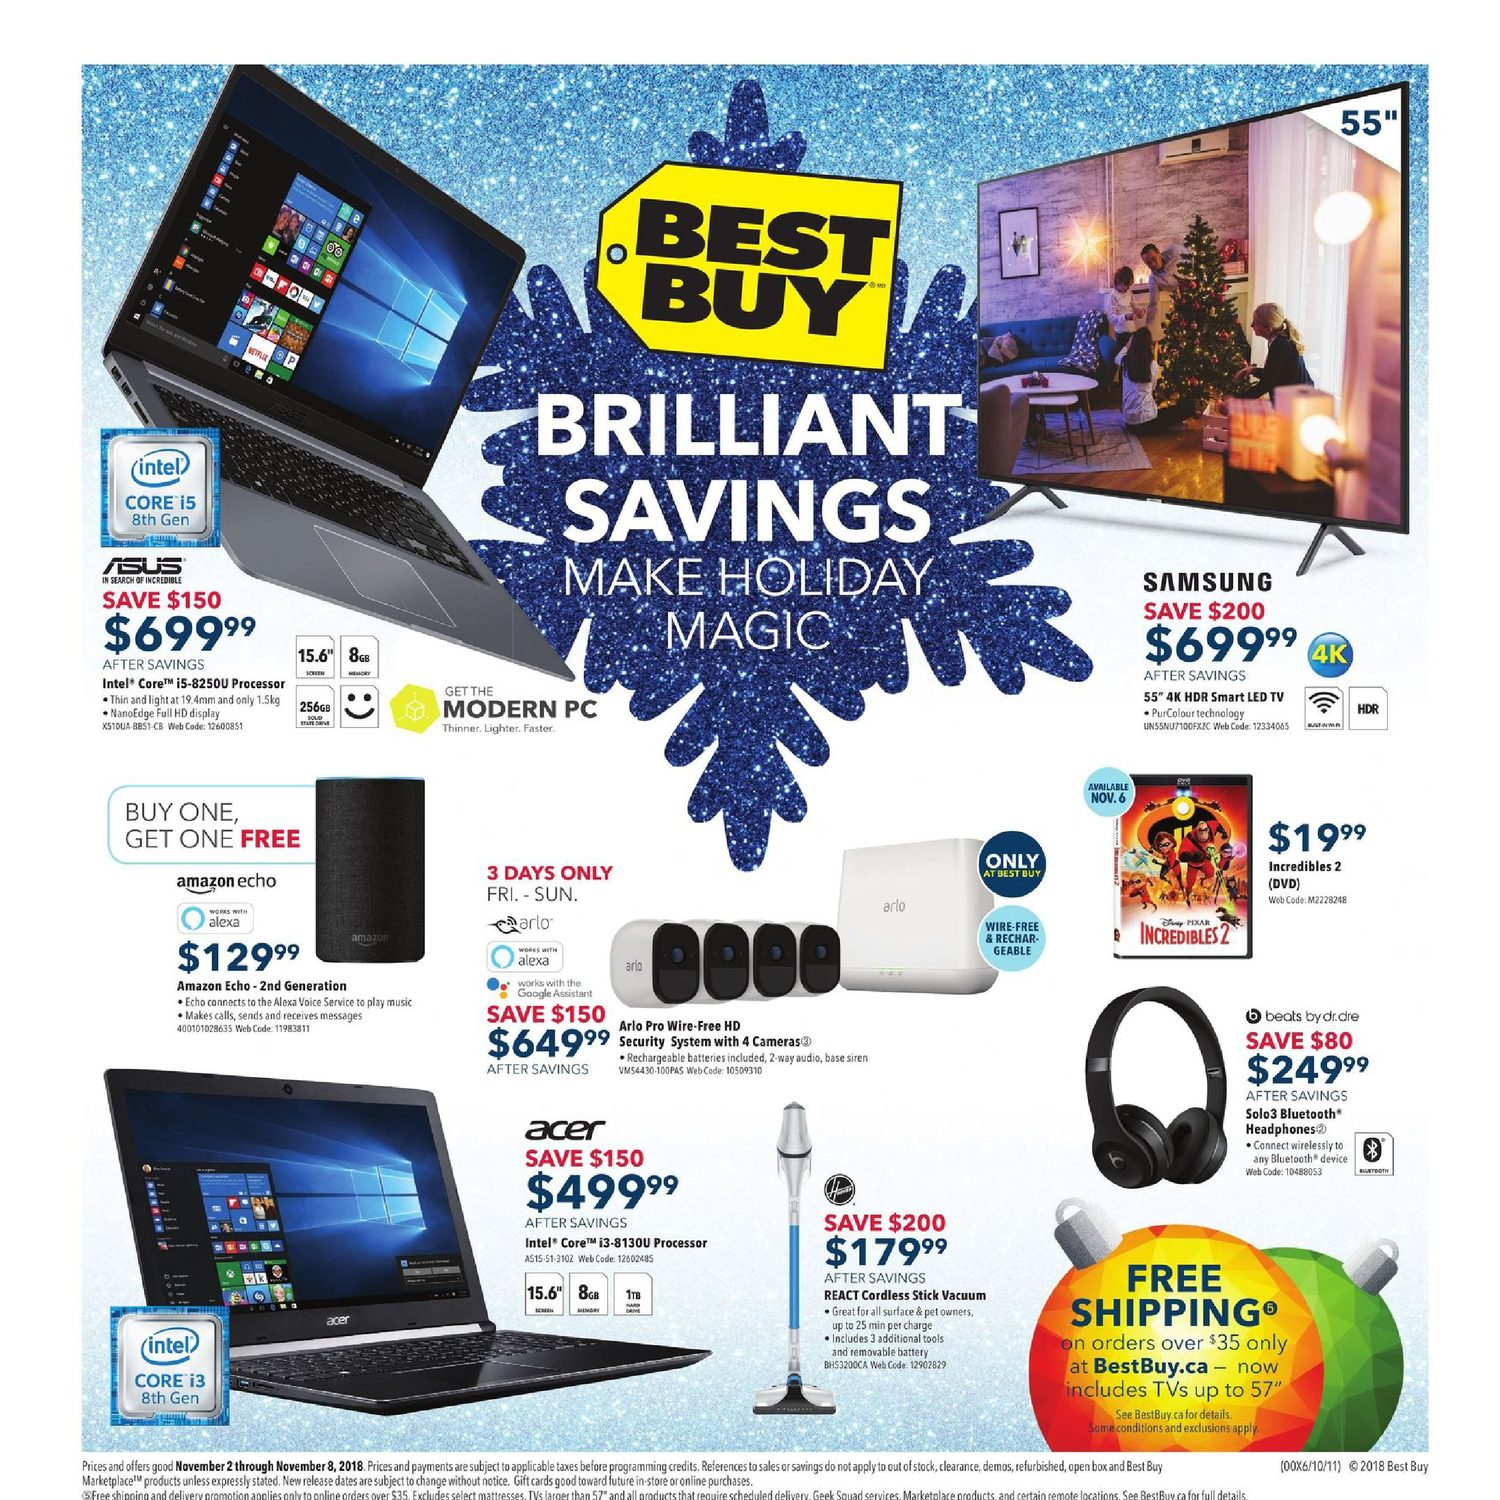 Best Buy Weekly Flyer - Weekly - Brilliant Savings Make